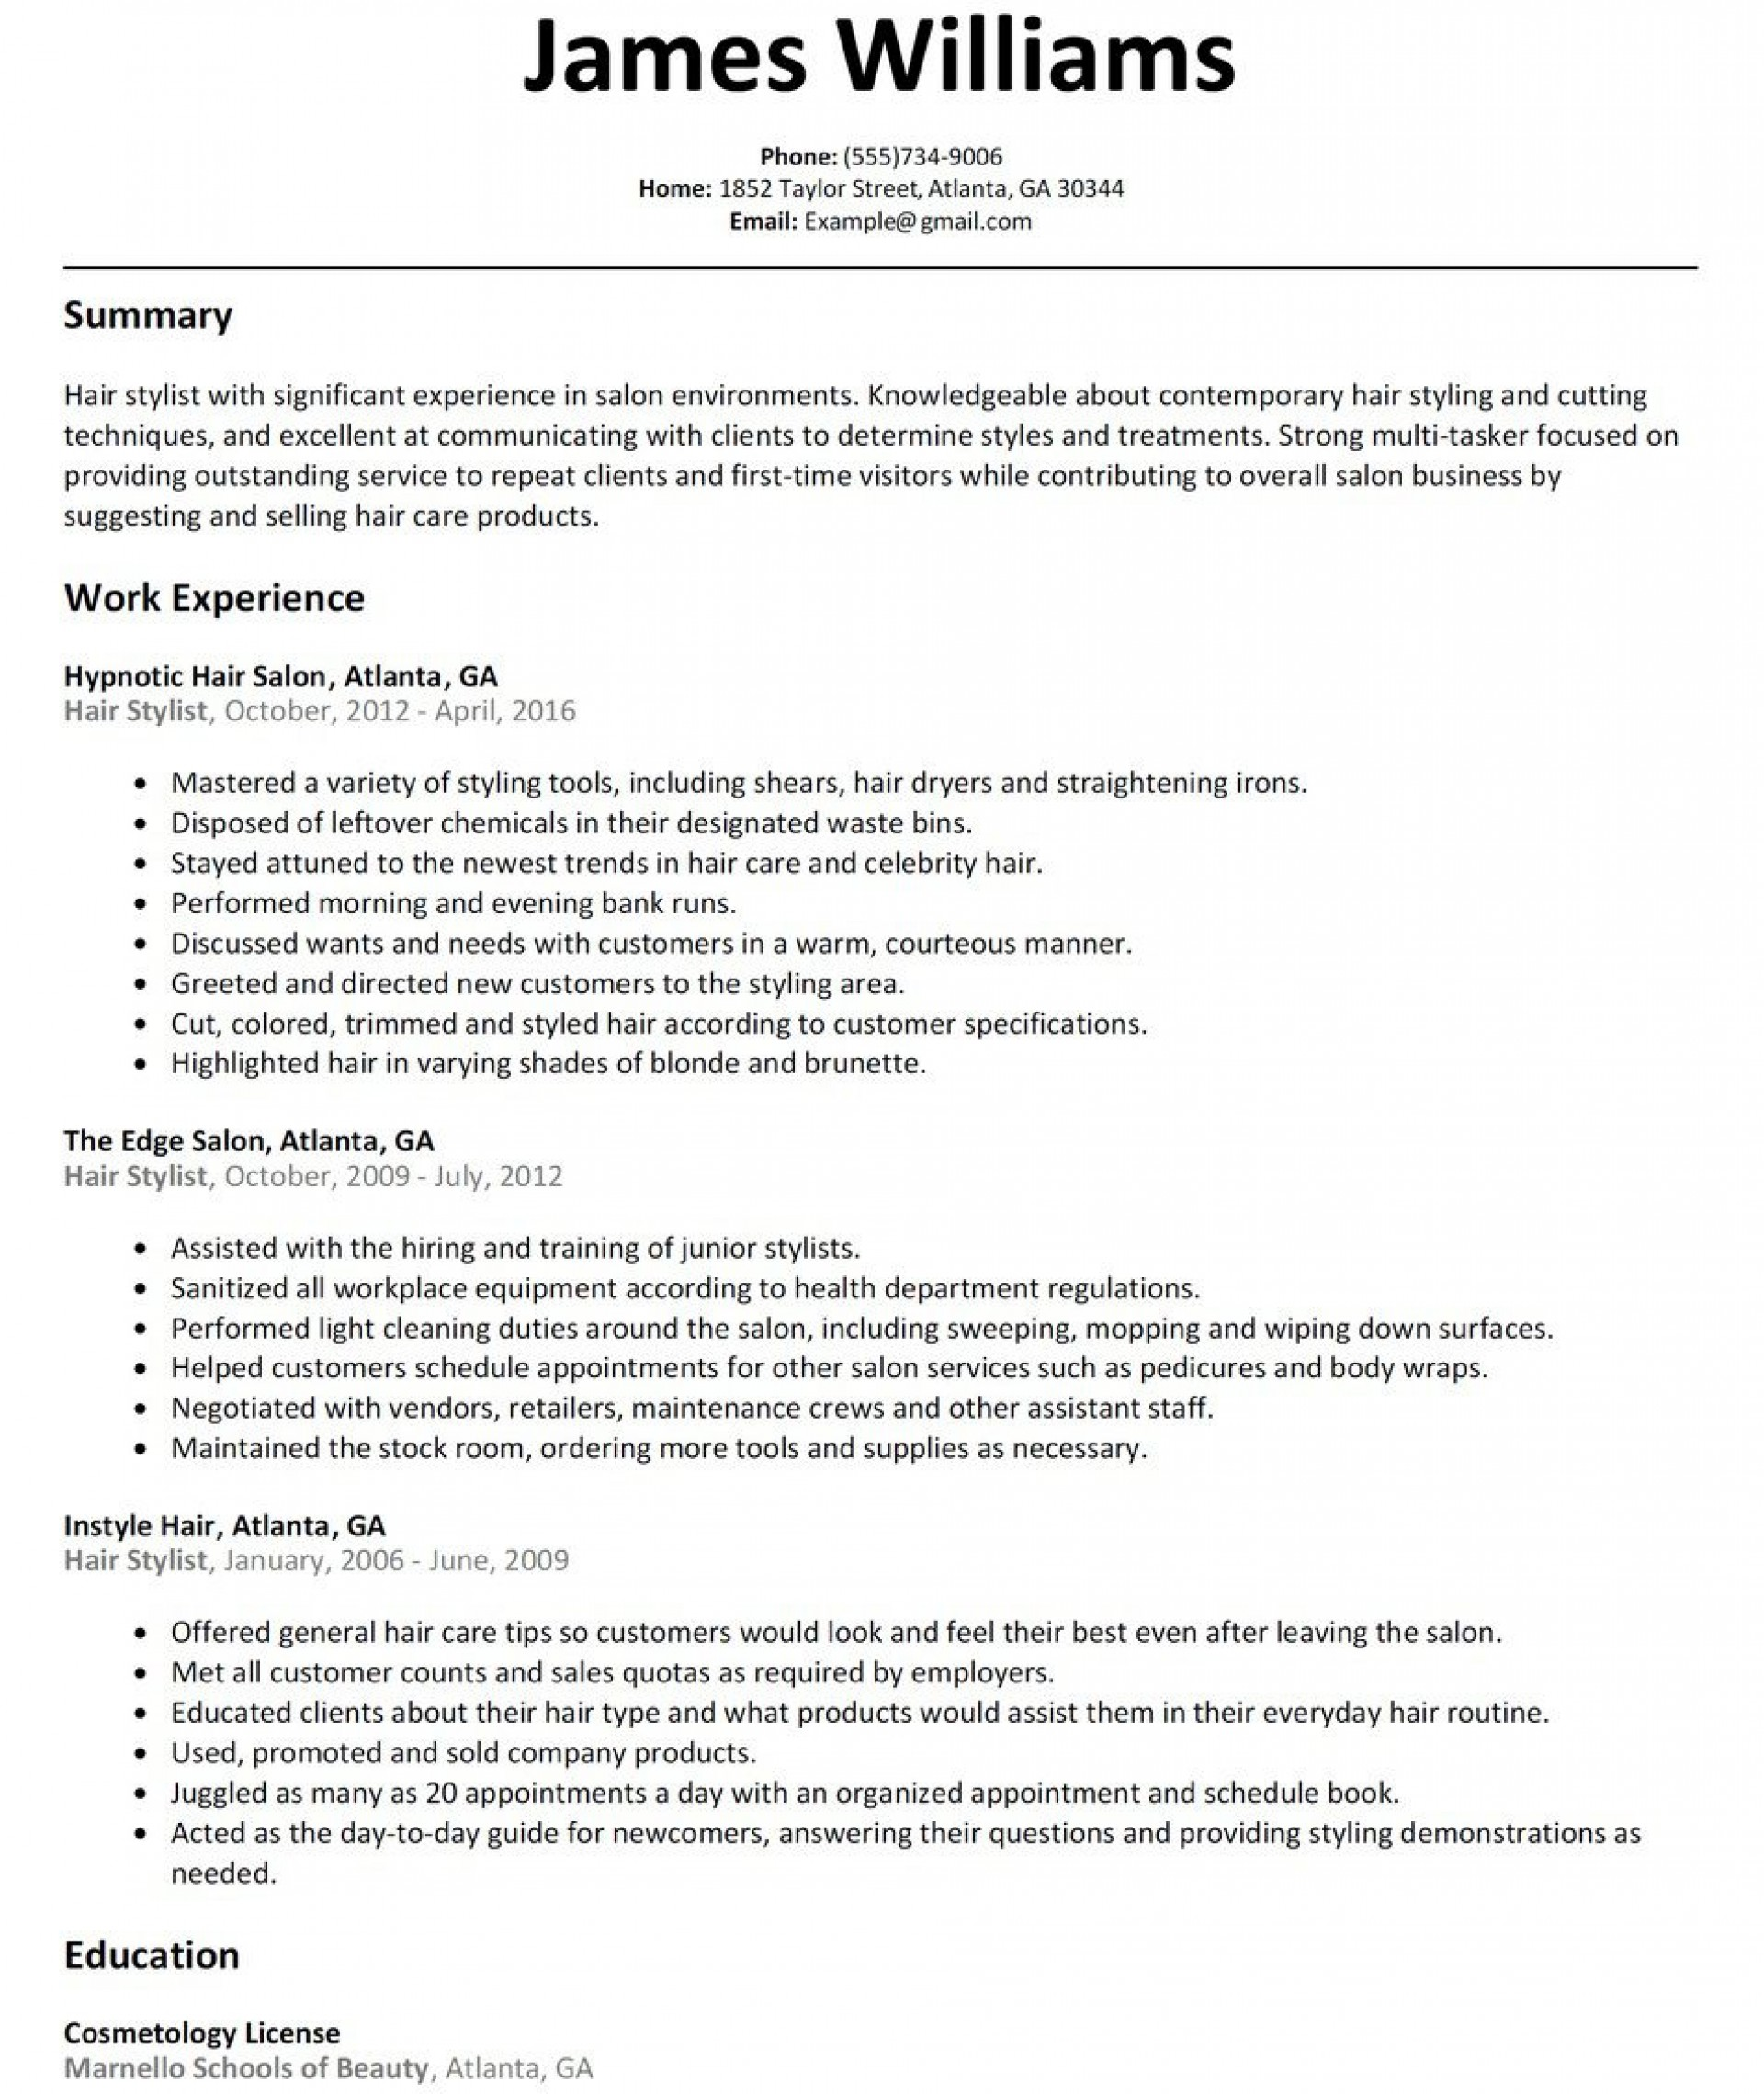 hair stylist resume template addictionary summary rare high project management job Resume Hair Stylist Resume Summary